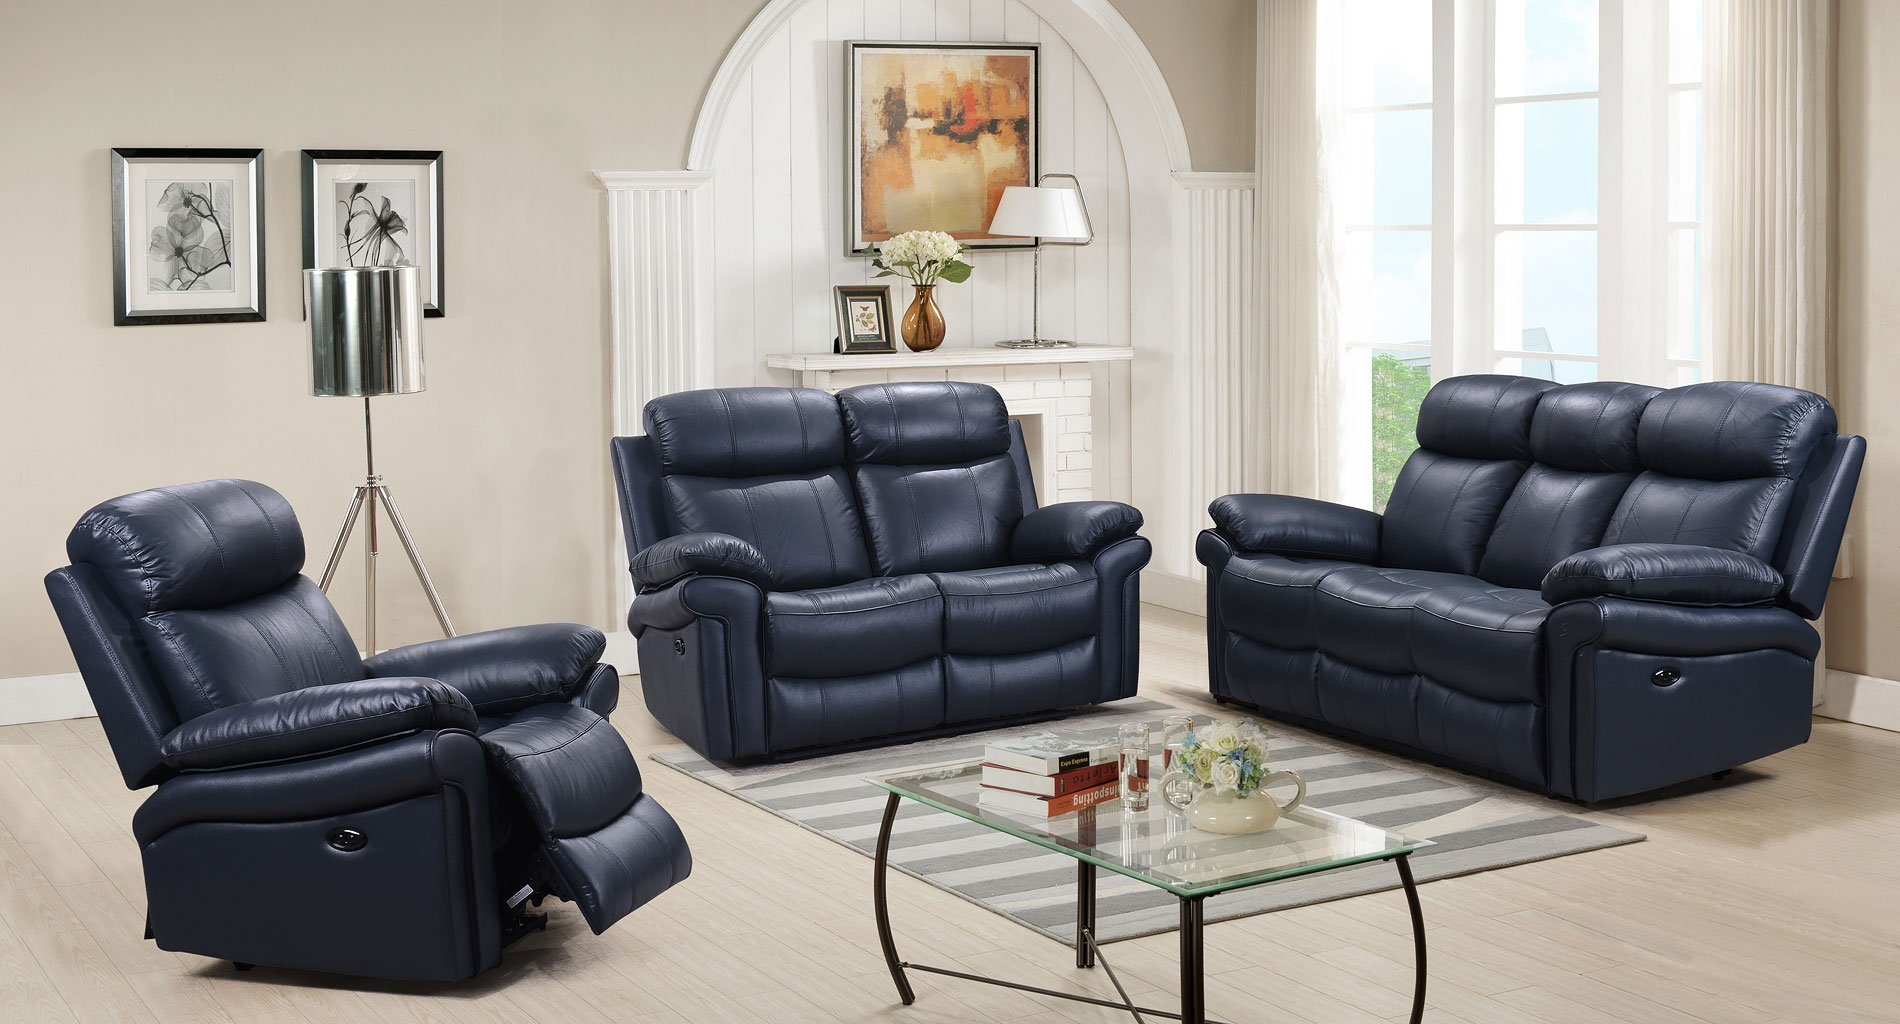 Joplin power reclining living room set navy living Reclining living room furniture